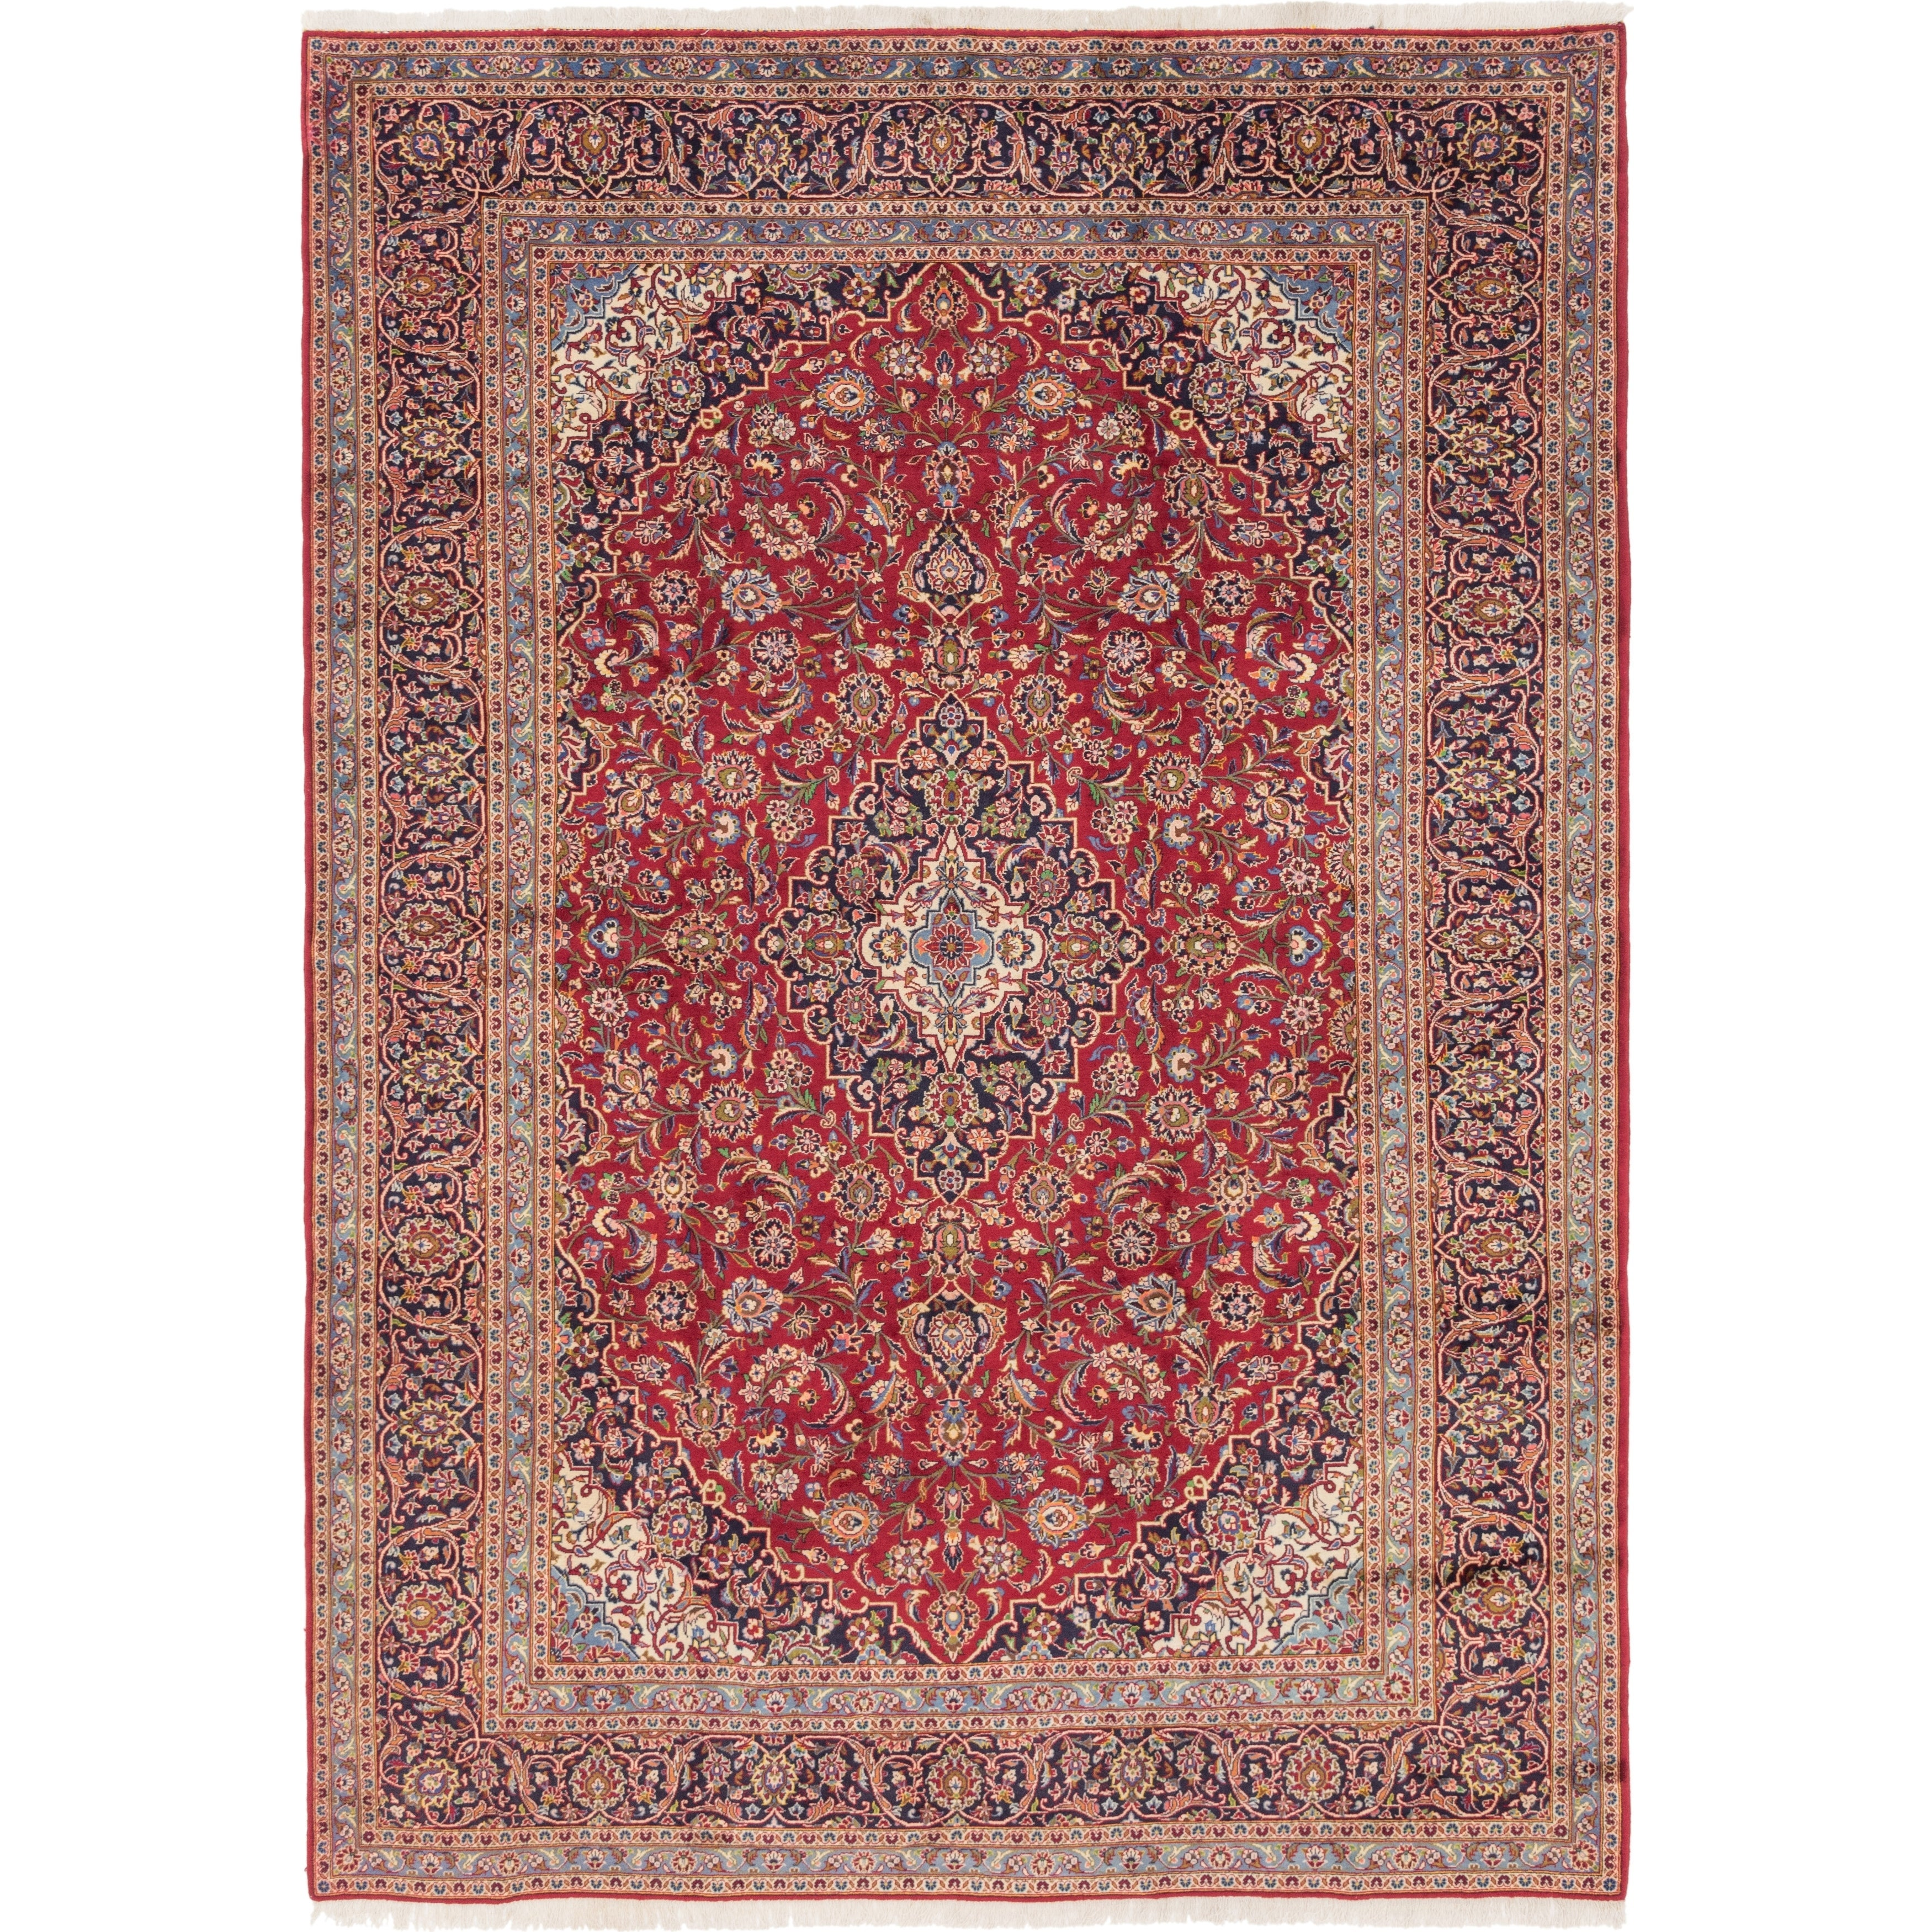 Hand Knotted Kashan Wool Area Rug - 9 5 x 12 3 (Red - 9 5 x 12 3)